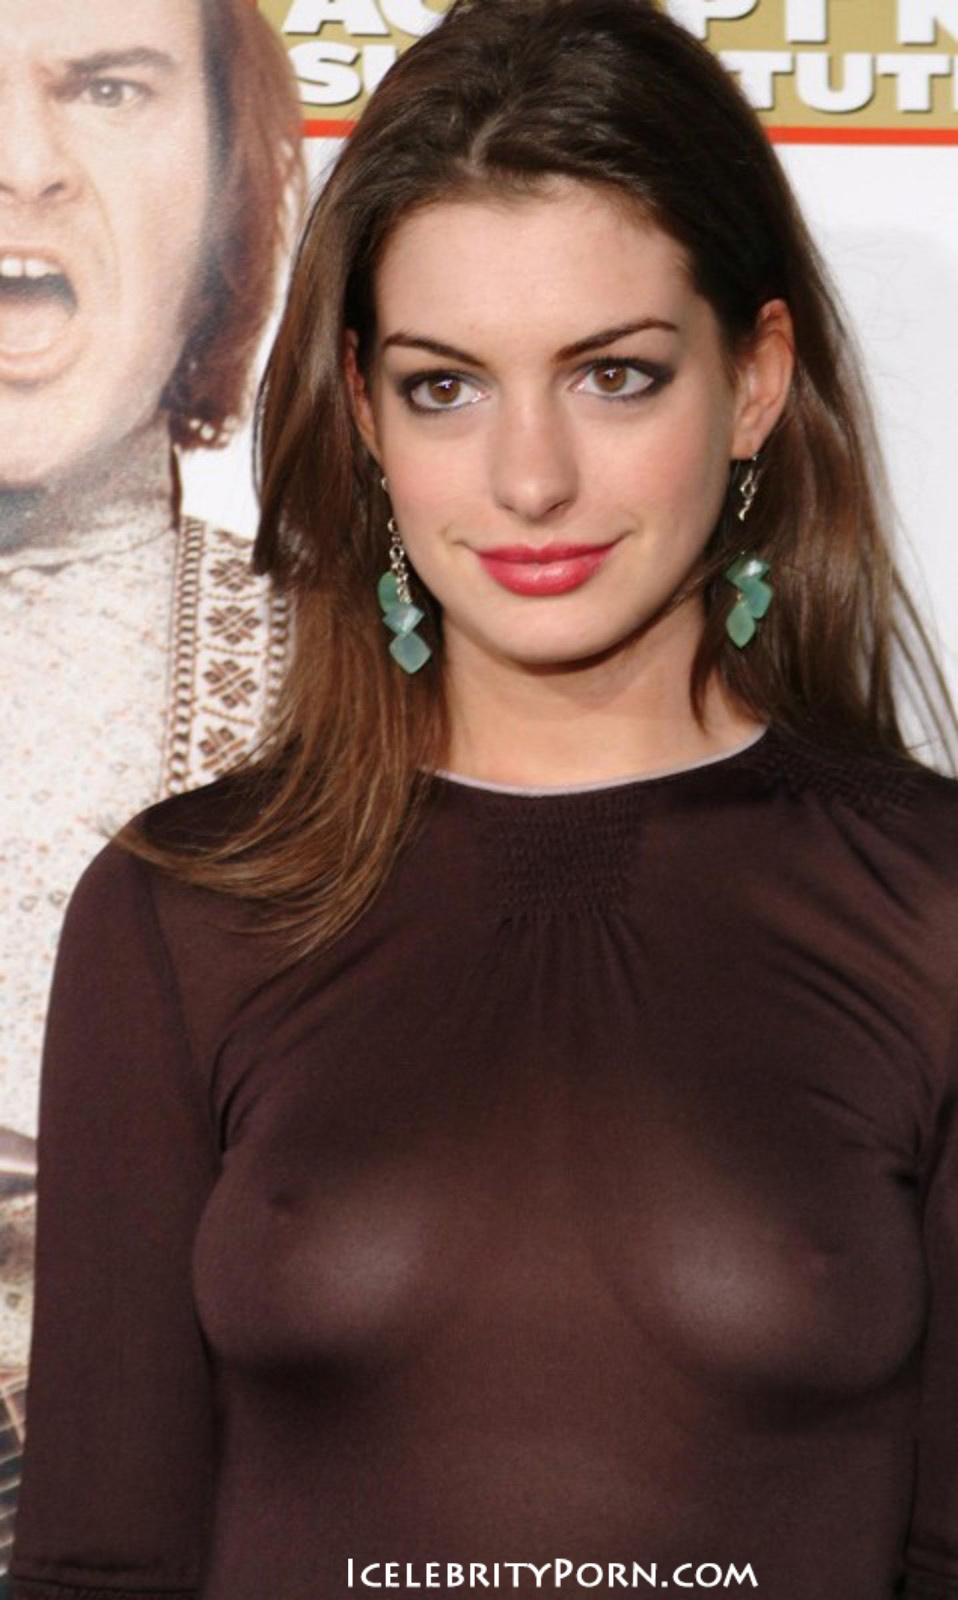 Anne Hathaway Nude Desnuda sex tape hot pics xxx porn video nudes celebrity hot caliente (5)